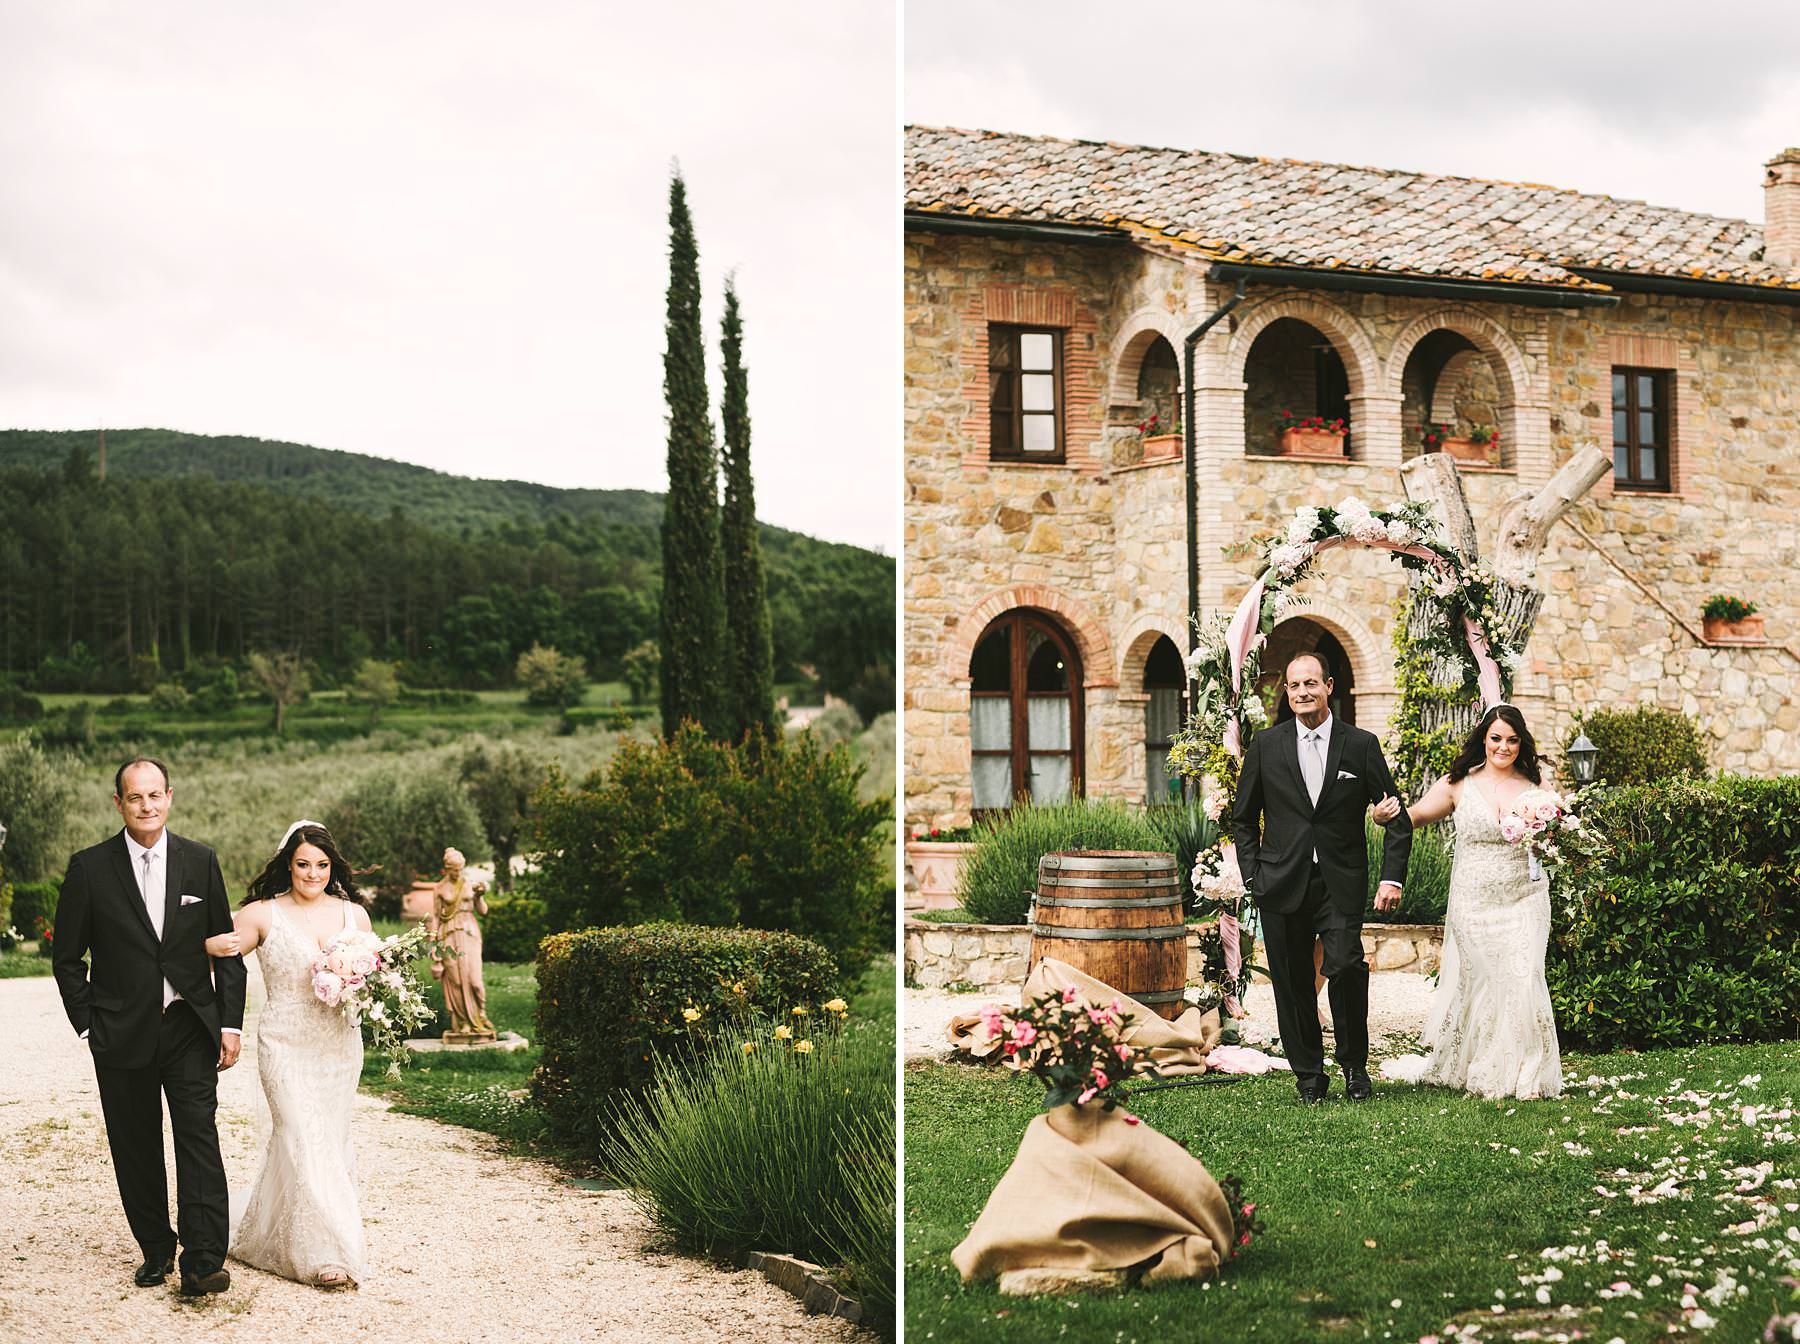 Lovely and emotional symbolic outdoor wedding ceremony at Villa Le Bolli venue near Radicondoli. Bride Hillary walks down the aisle with father